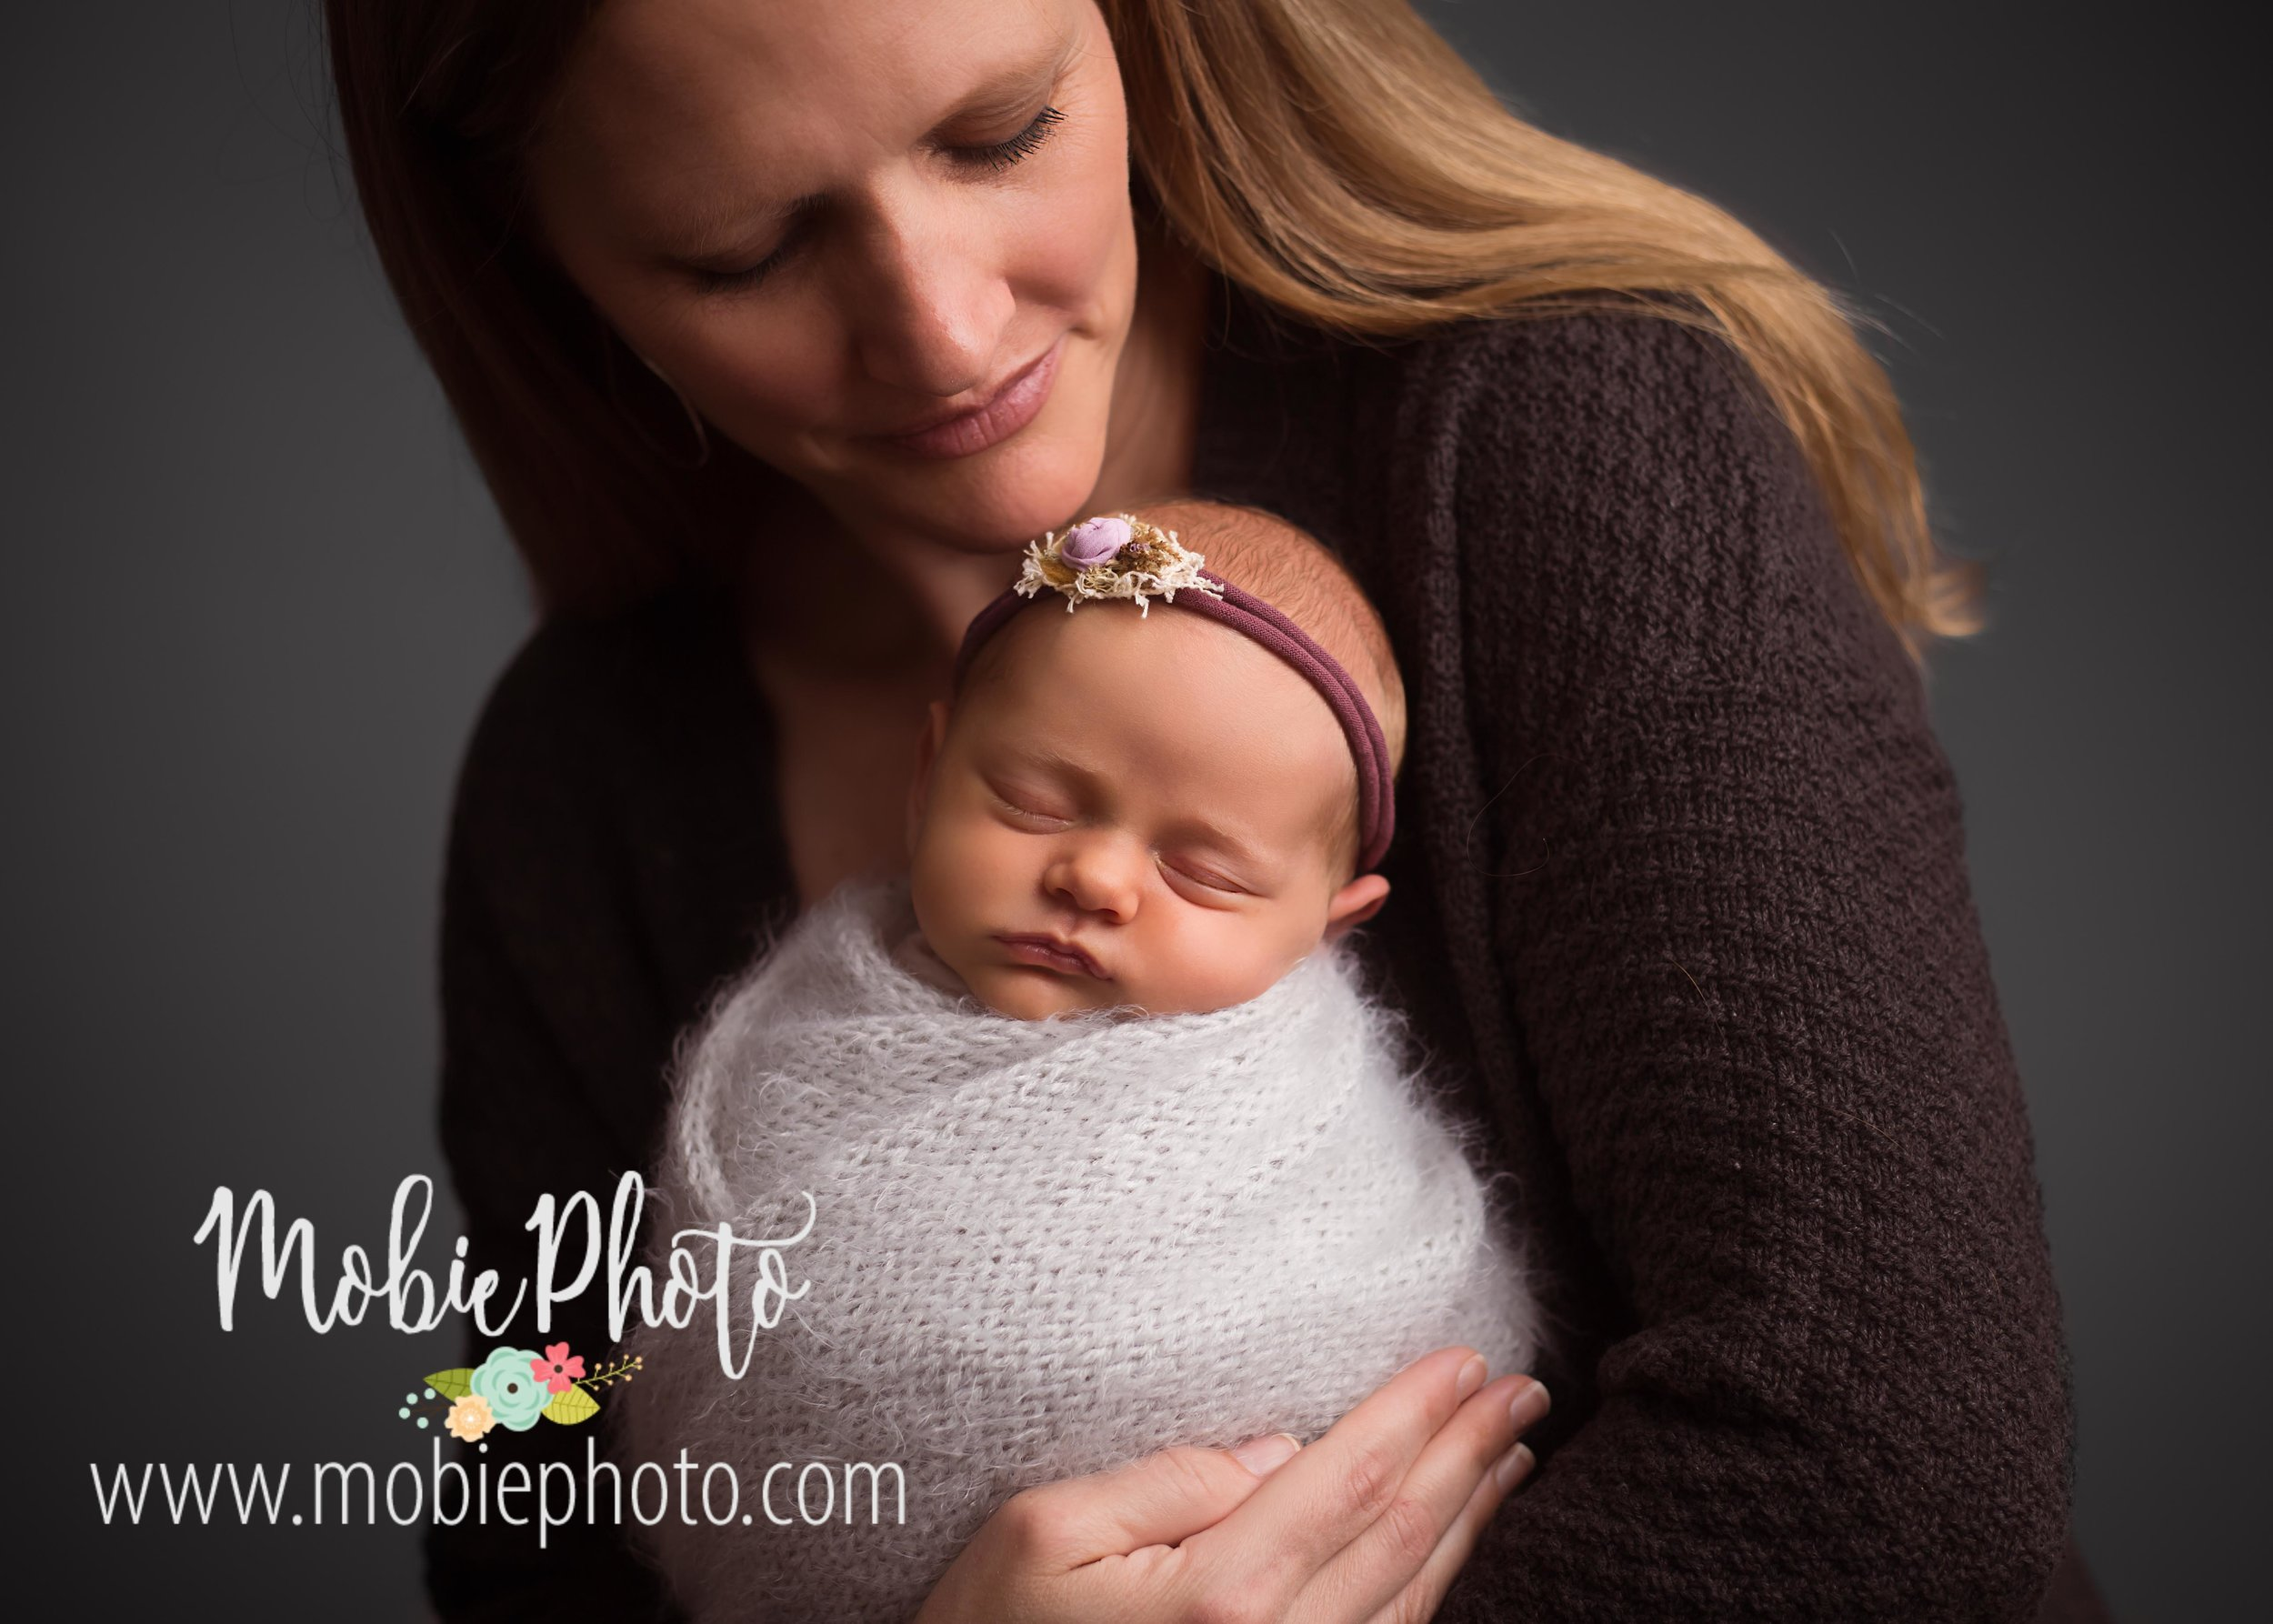 Newborn Girl Photo Session - Mobie Photo - Utah Newborn Photography